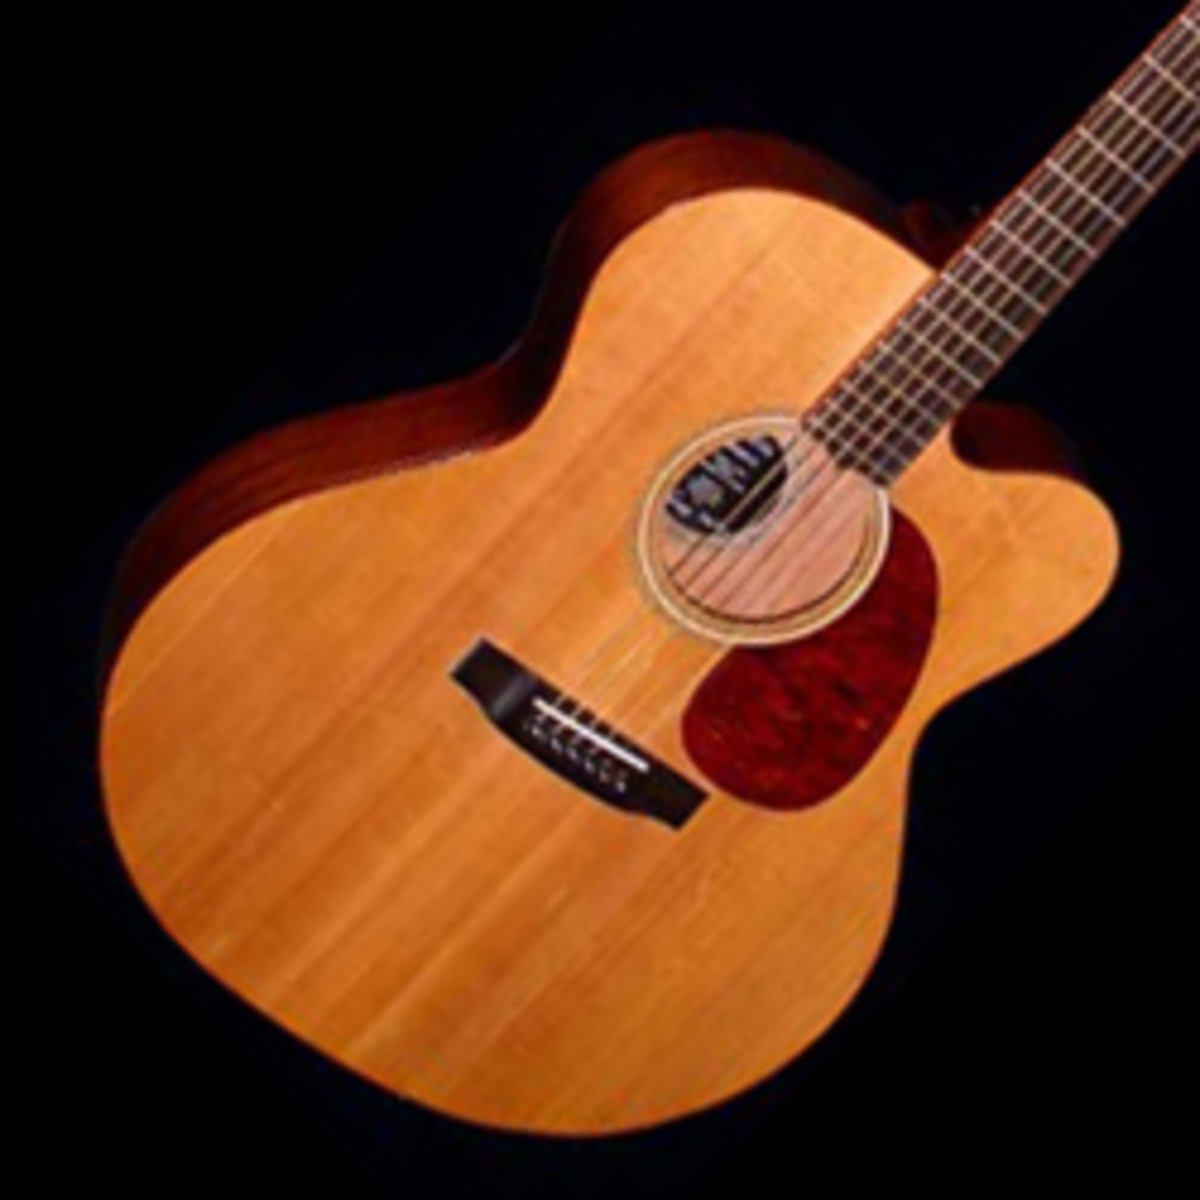 Acoustic guitar with a 'cutaway'. The indentation allows easier access to the upper frets on the treble strings.